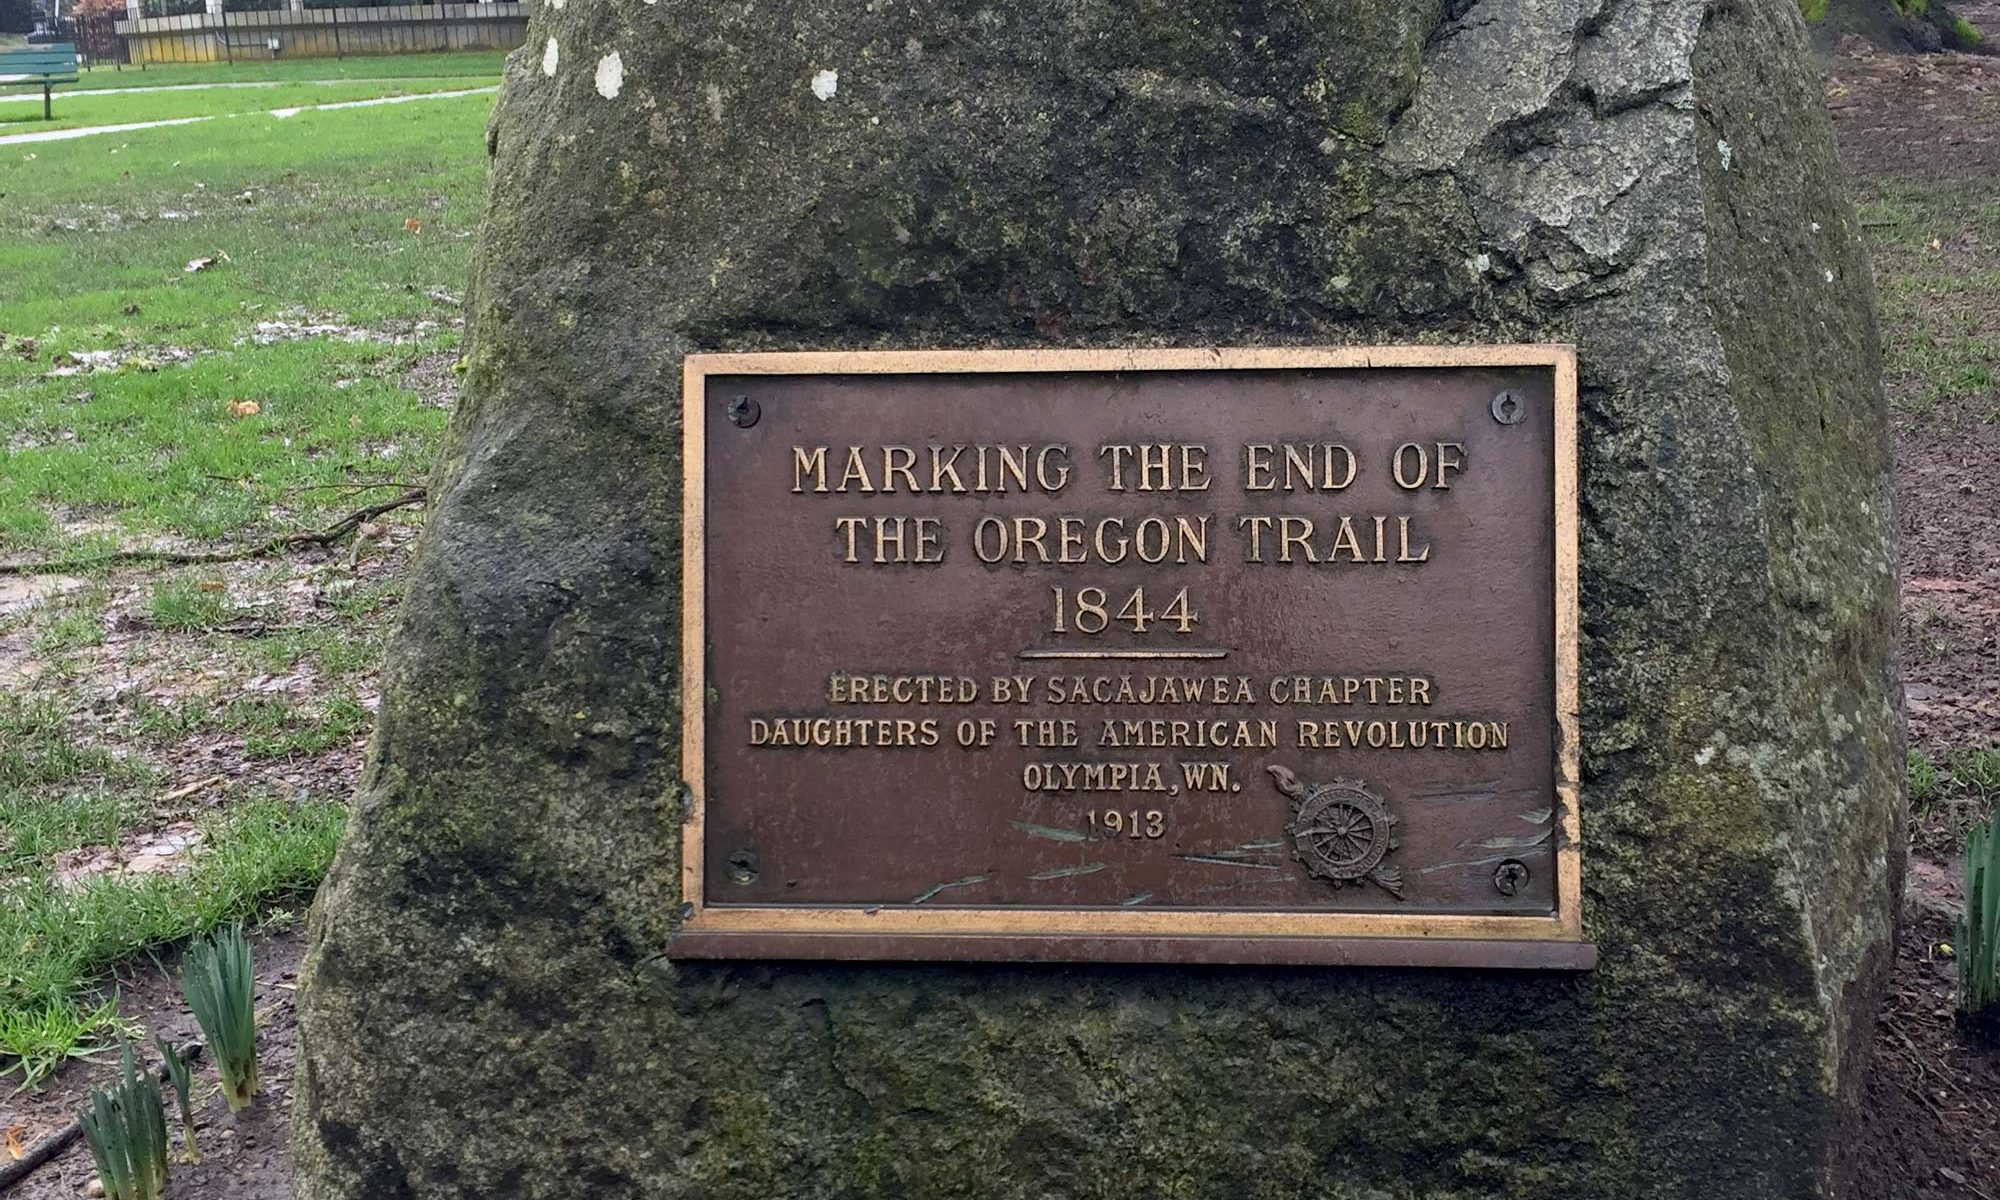 End of the Oregon Trail marker in Sylvester Park, Olympia